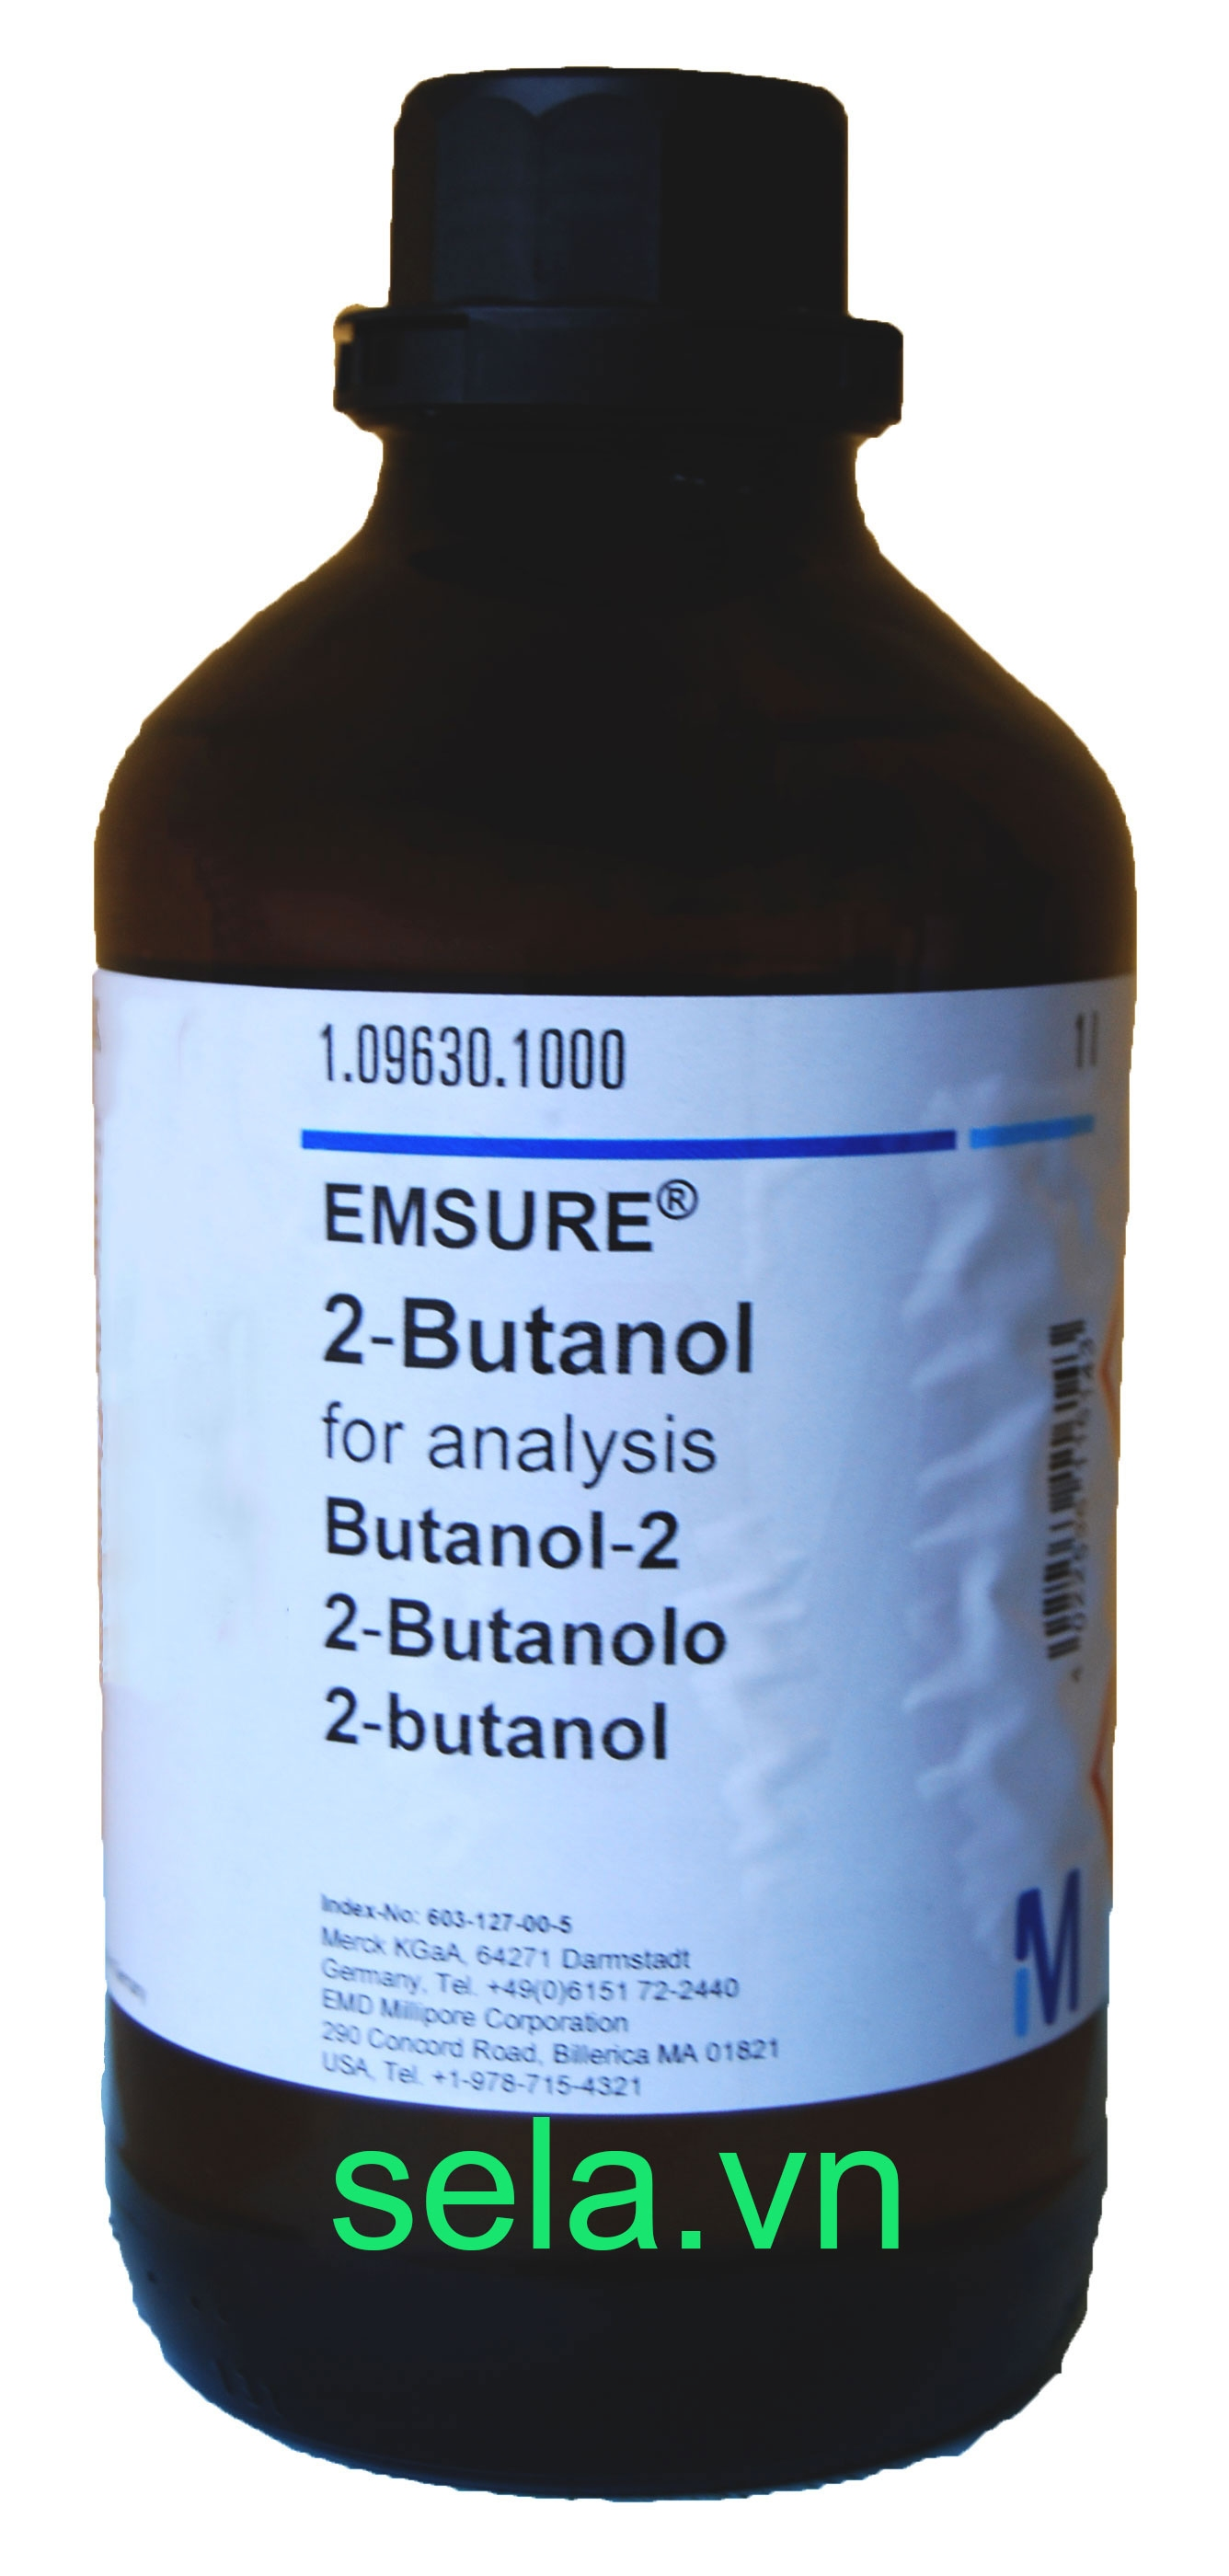 2-Butanol for analysis EMSURE®